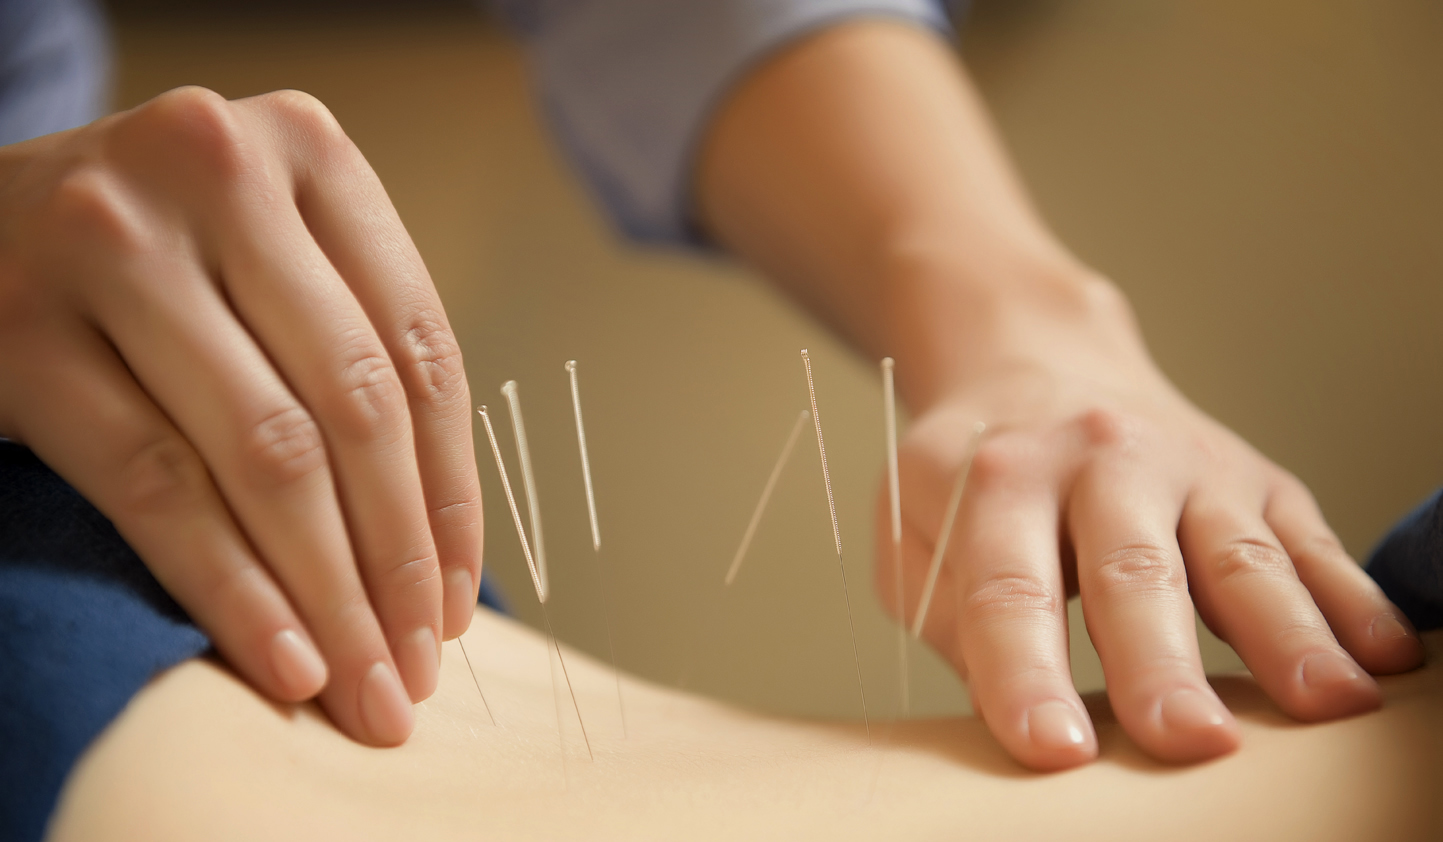 Acupuncture for Back Pain – What you Need to Know